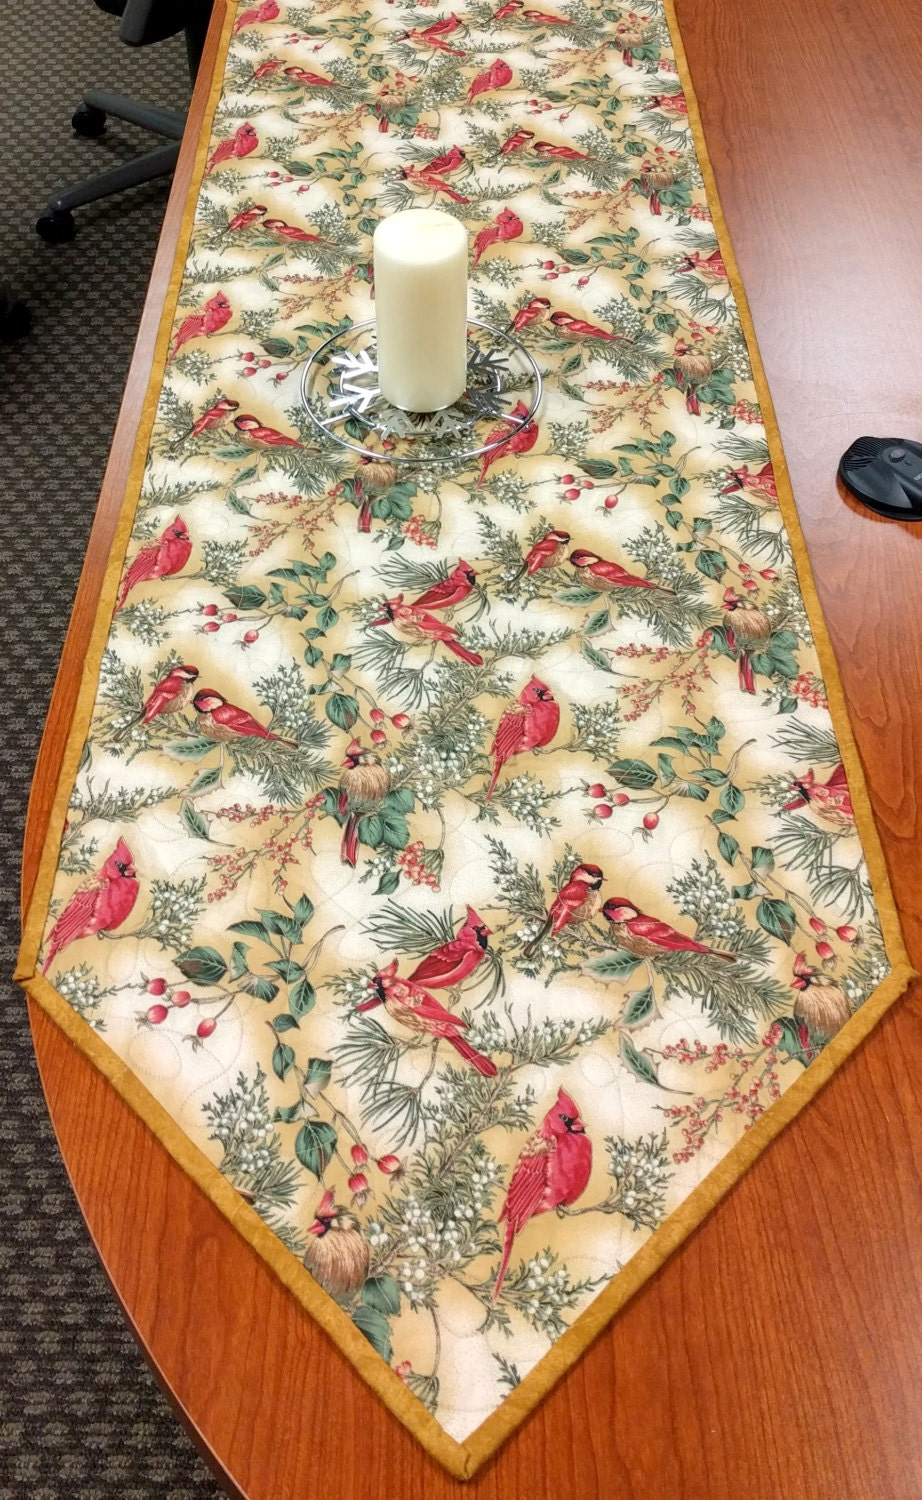 Thanksgiving Quilted Table Runner Patterns : Thanksgiving Winter Quilted Table Runner by CactusPenguin on Etsy